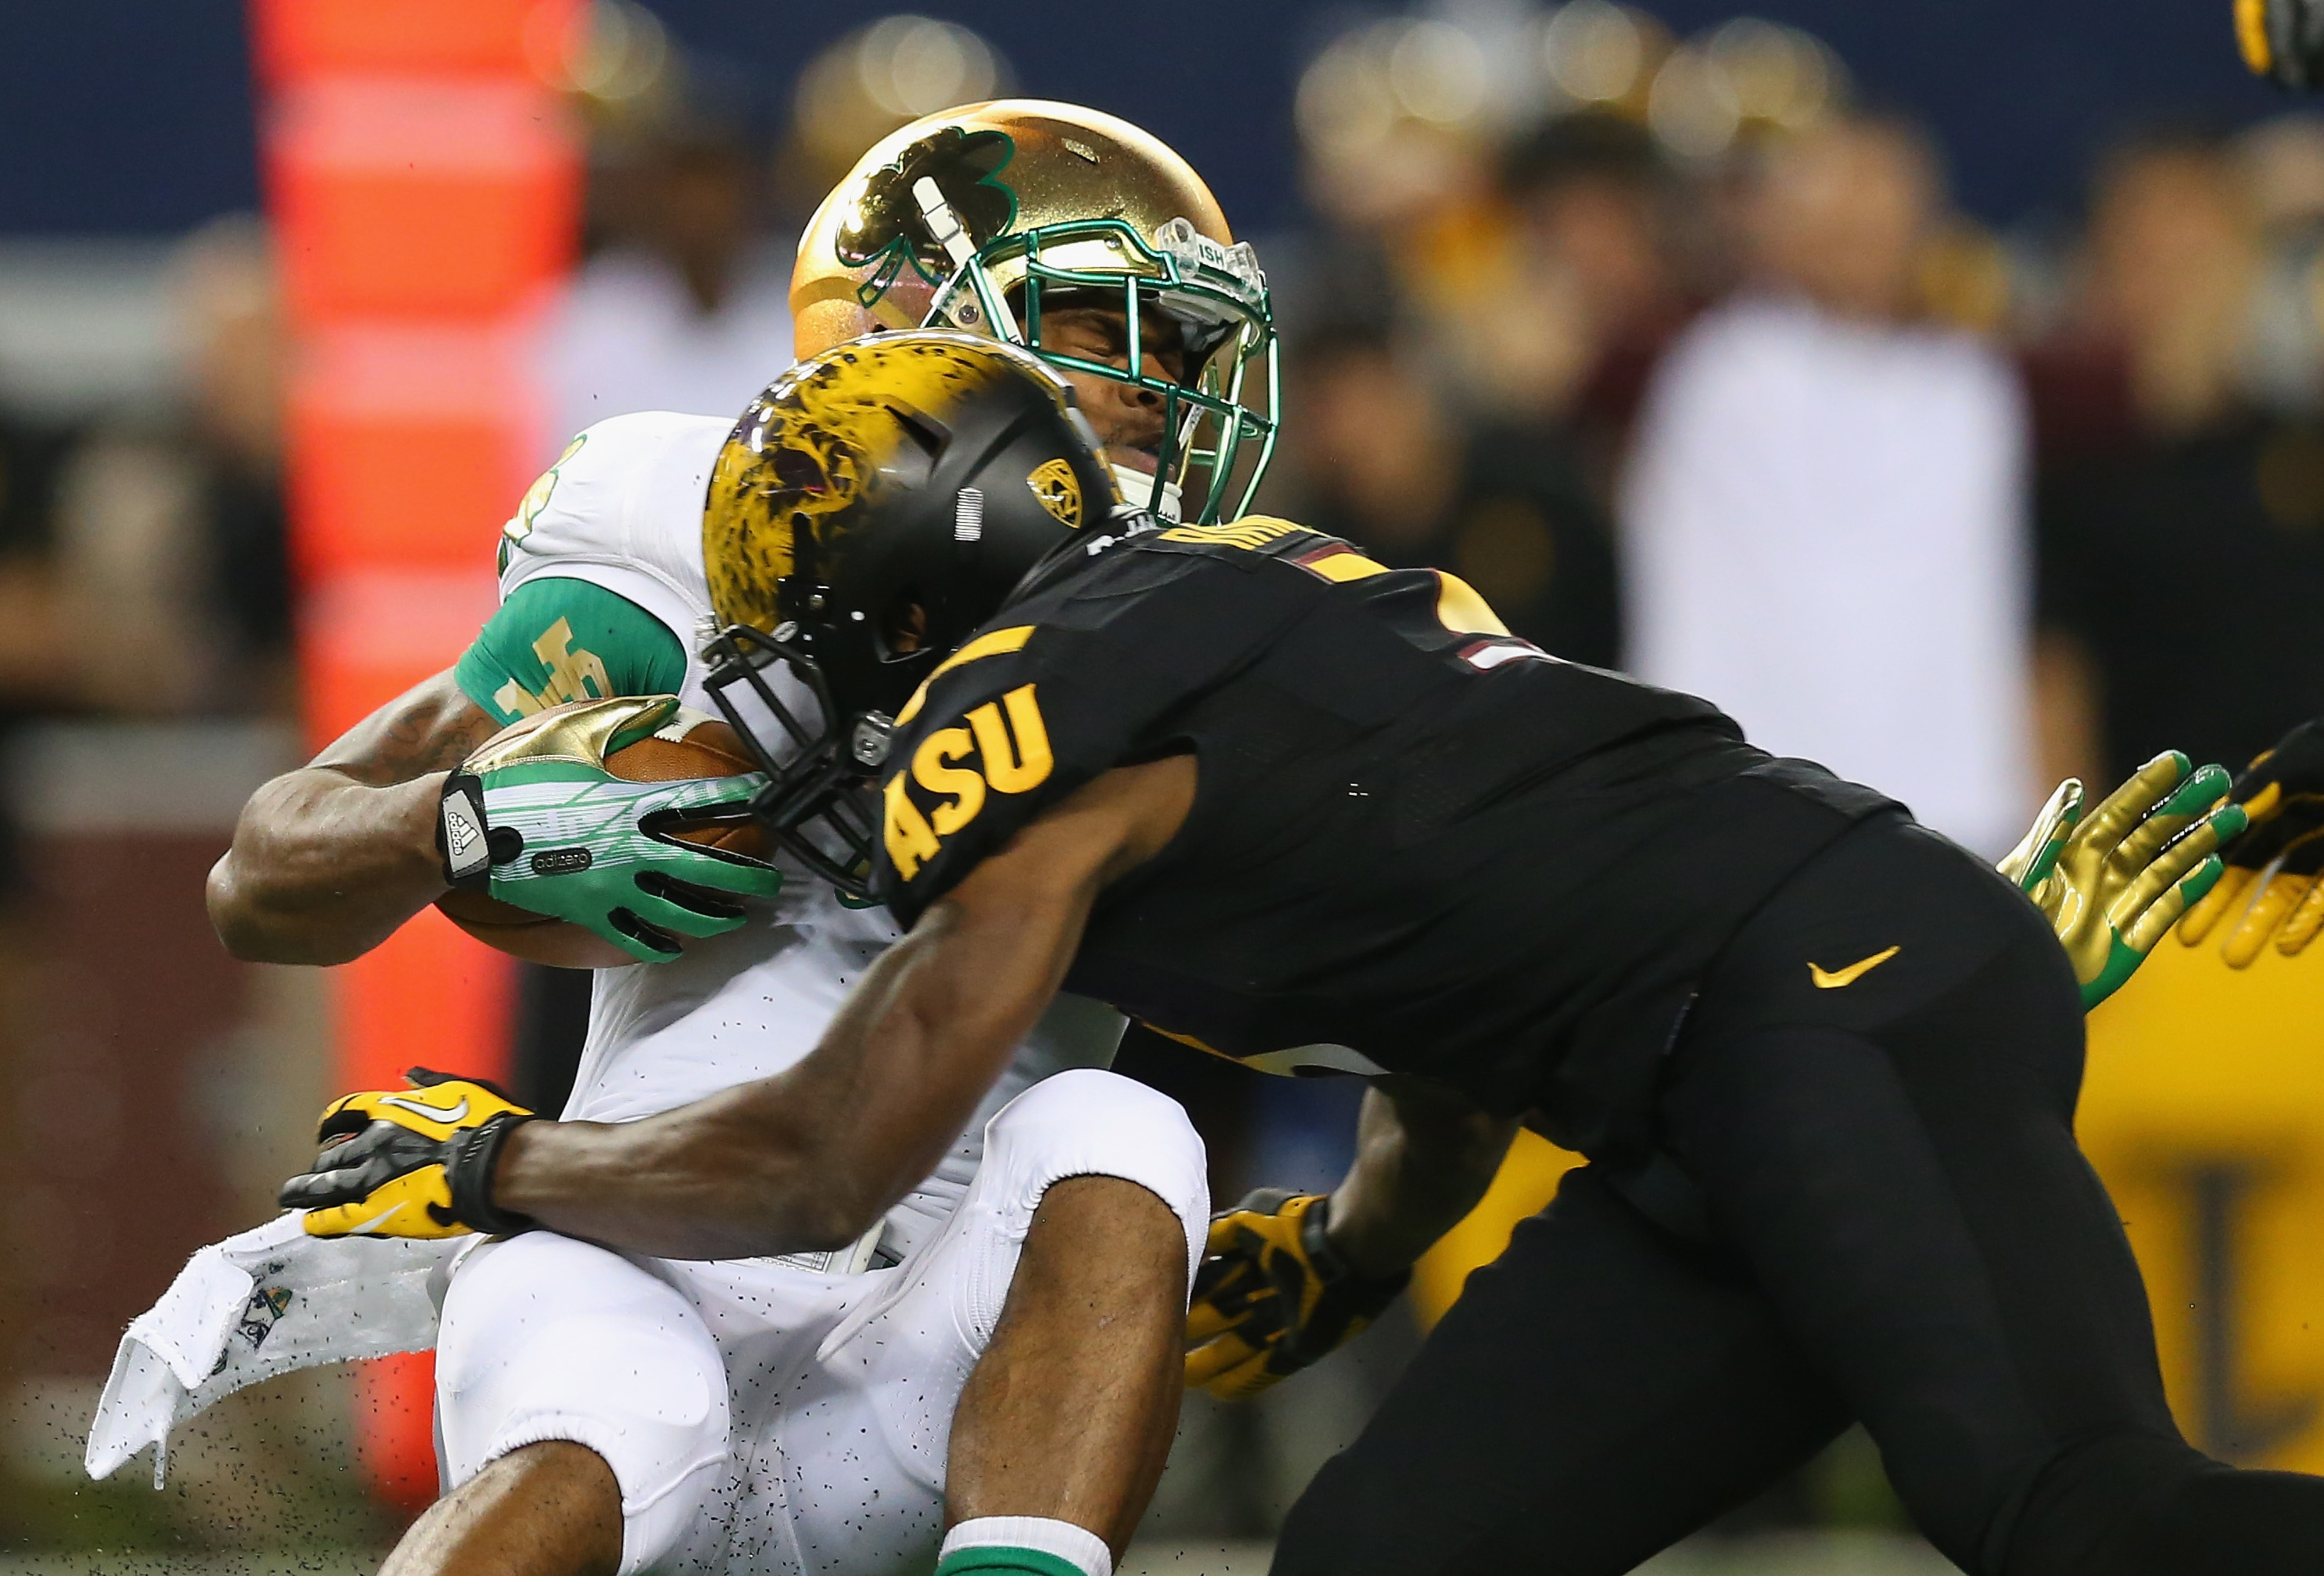 Damarious Randall makes one of his 17 tackles against Notre Dame on October 5.